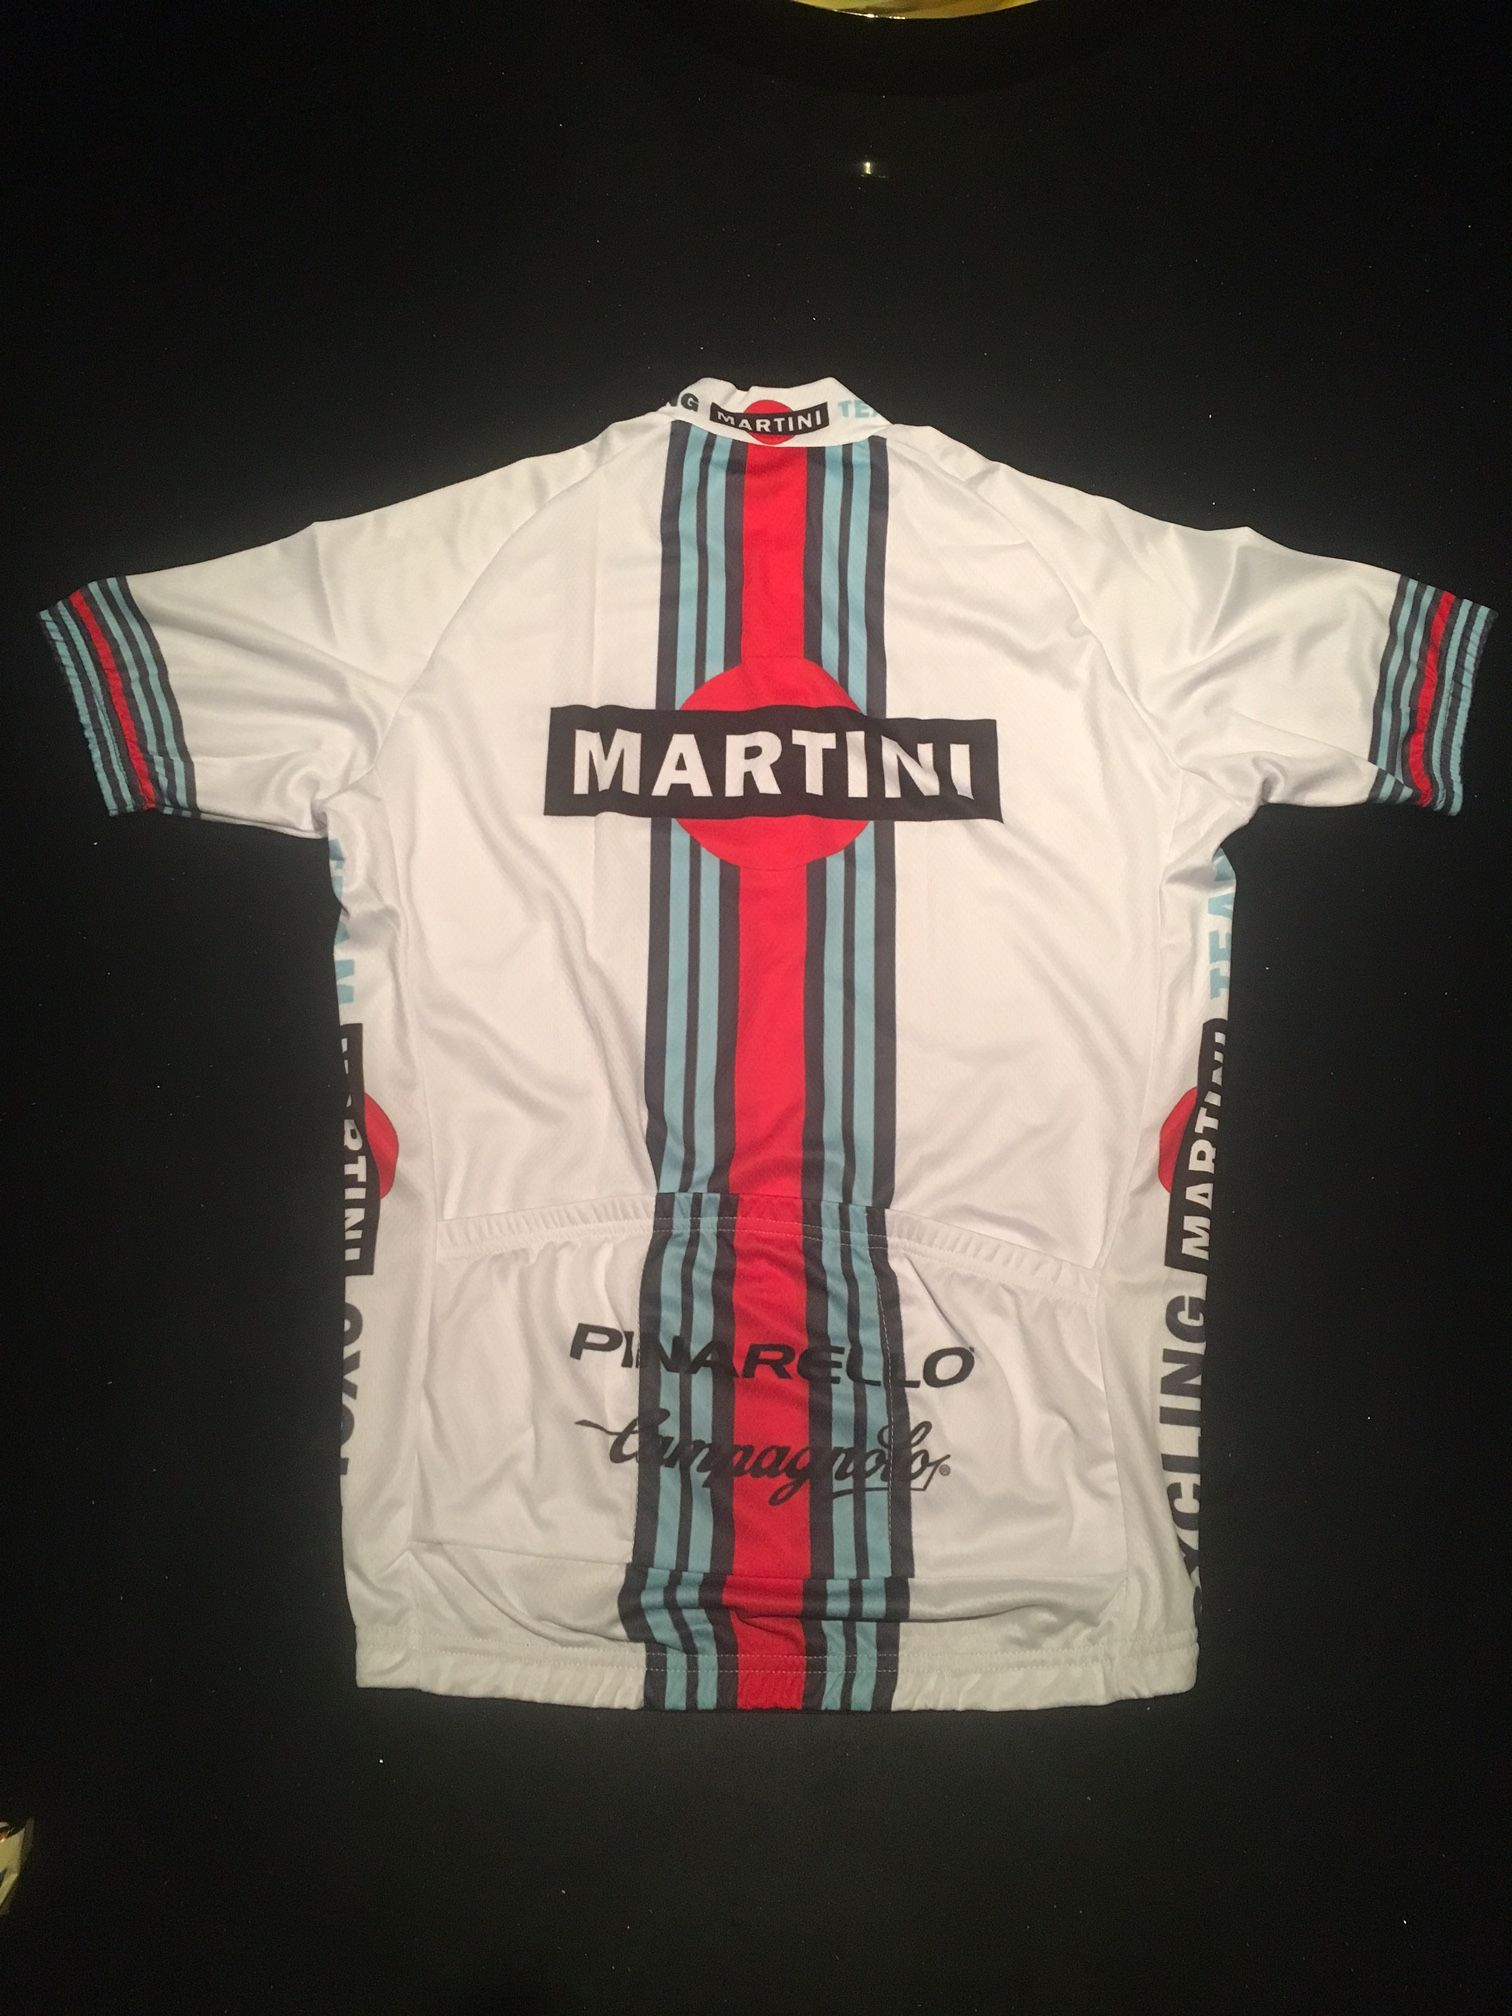 bf27de1a6 Cycling Martini Team Jersey - BACK - I like the finished custom made result  including Pinarello   Campagnolo brands.